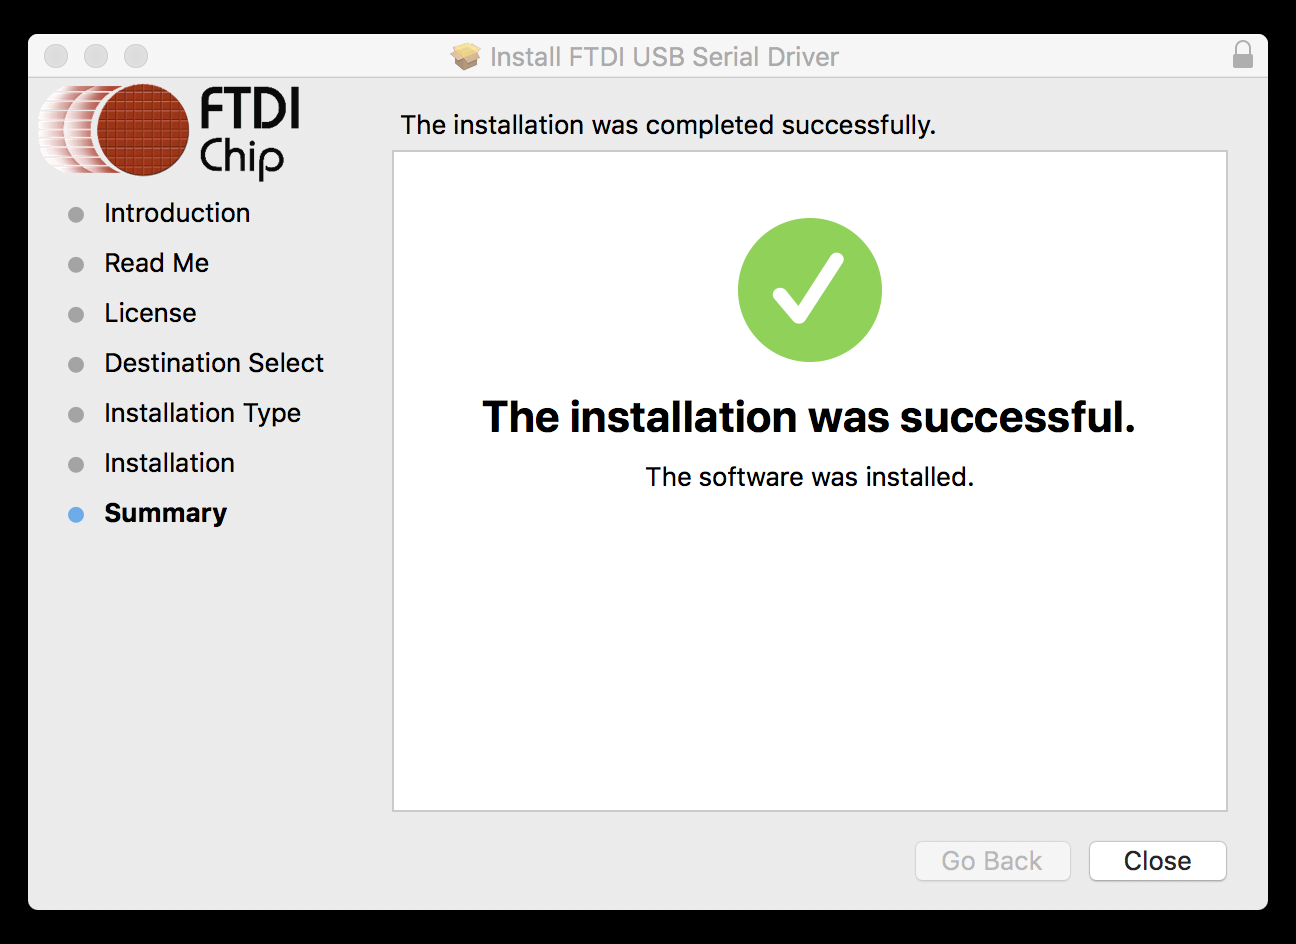 Installer Finished